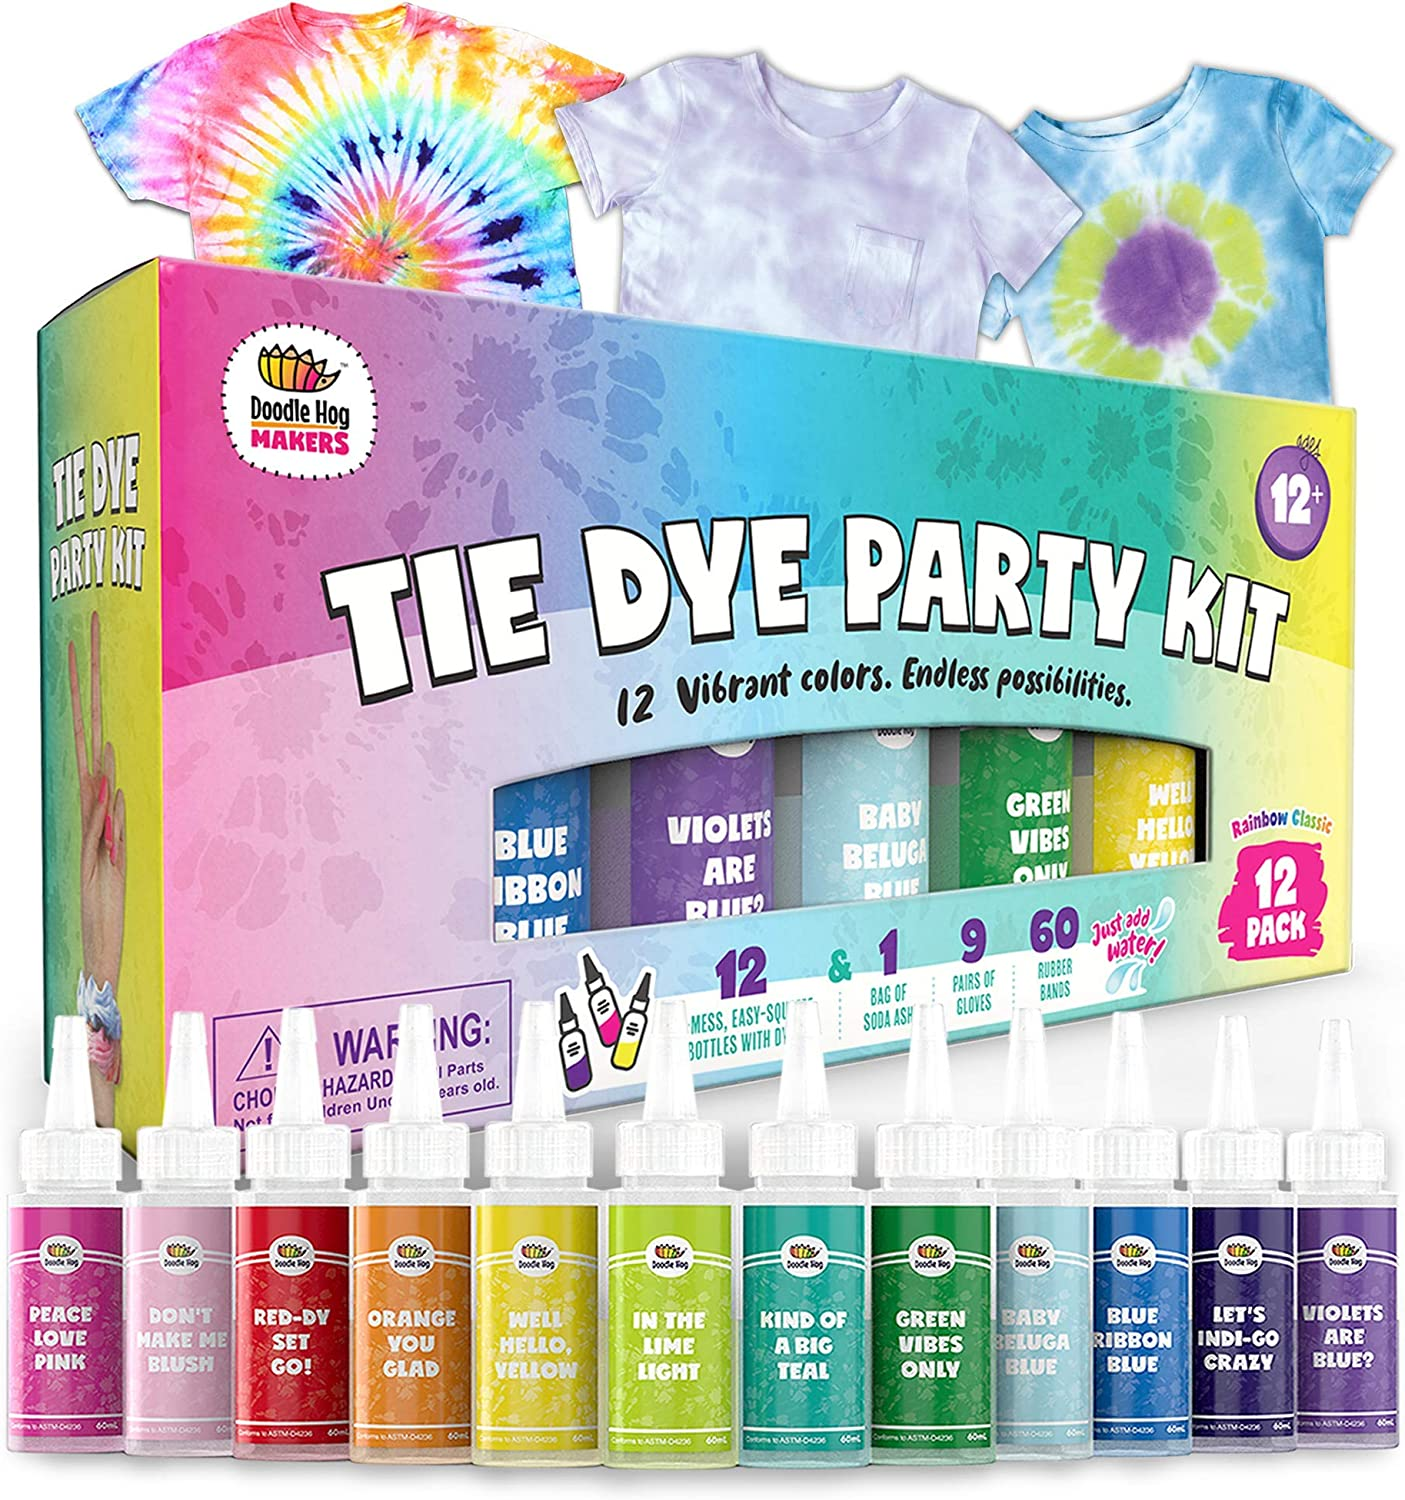 Doodlehog Easy Tie Dye Party Kit for Kids, Adults, and Groups. Create Vibrant Designs with Non-Toxic Dye. 12 Colors Included! Beginner-Friendly: Just Add Water! Dye up to 10 Medium Kids T-Shirts!: Arts, Crafts & Sewing